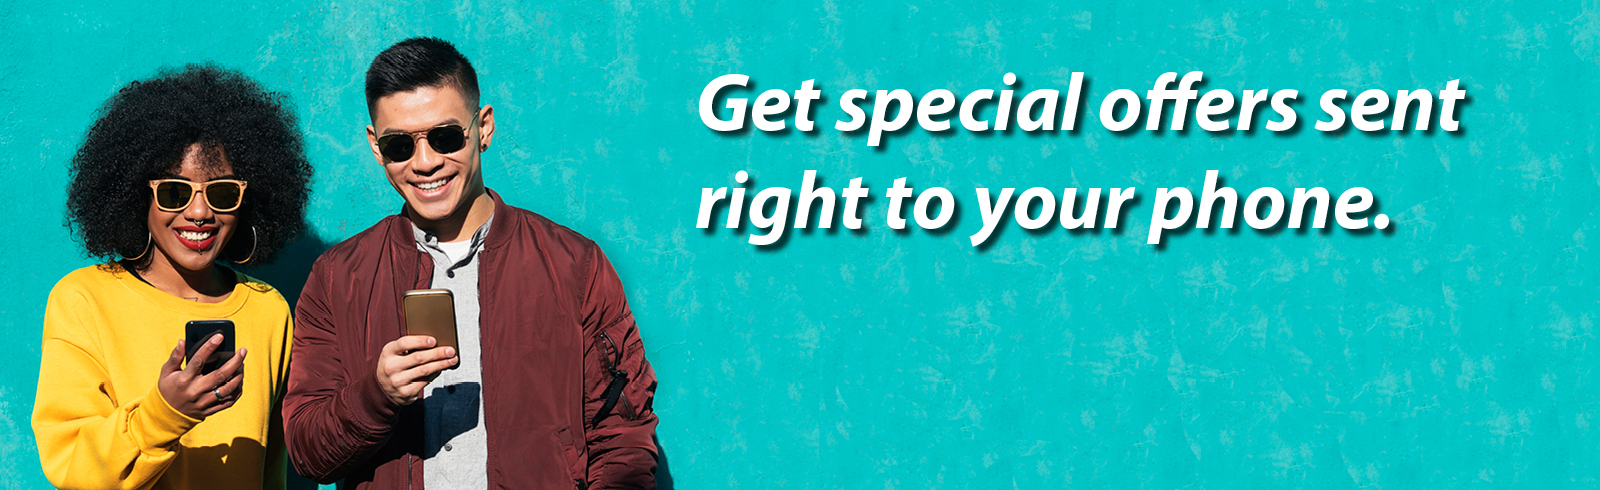 Get Special Offers Sent Right to Your Phone!